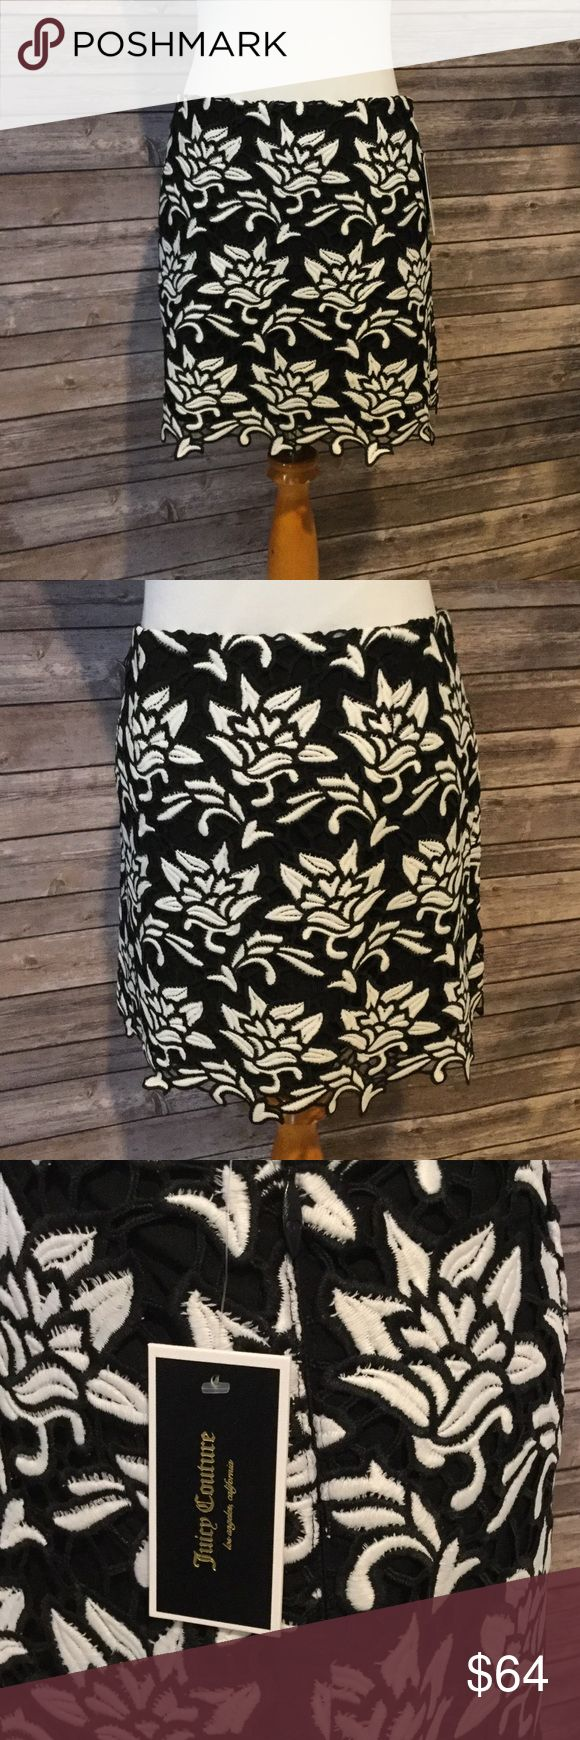 Juicy Couture Black Label Graphic Guipure Skirt 8 Juicy Couture Black Label LA graphic guipure mini skirt. Large black and white open lace print. Fully lined, hidden side zipper. Size 8. Excellent condition. Brand new with tags. Juicy Couture Skirts Mini